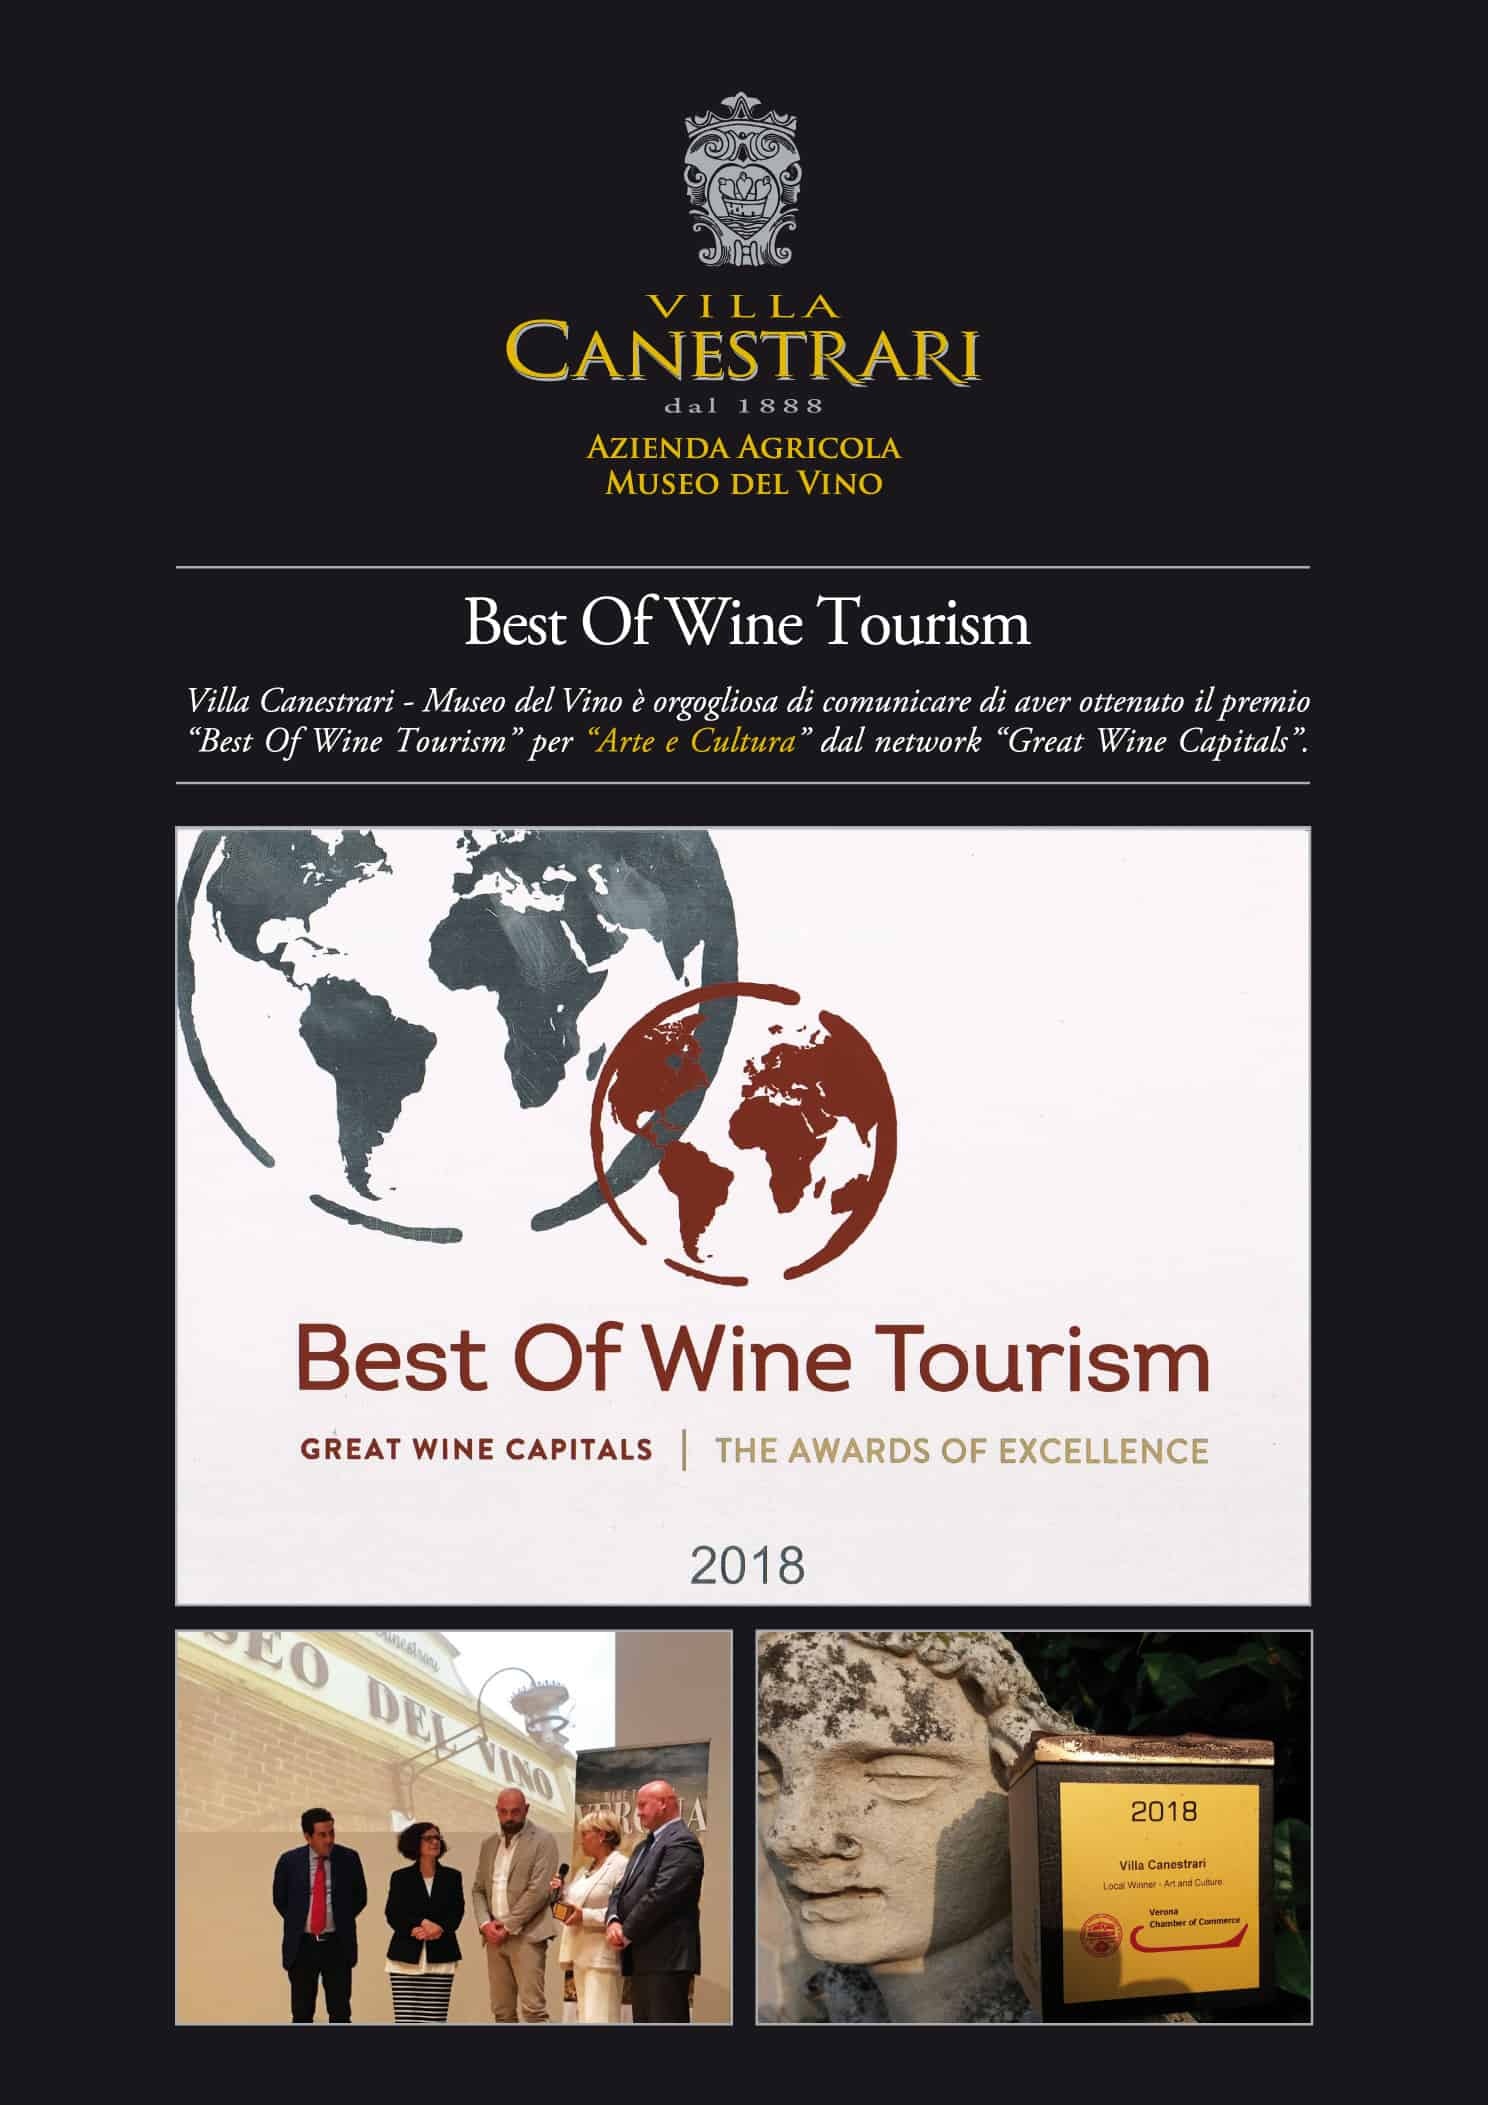 Best of wine tourism Villa Canestrari